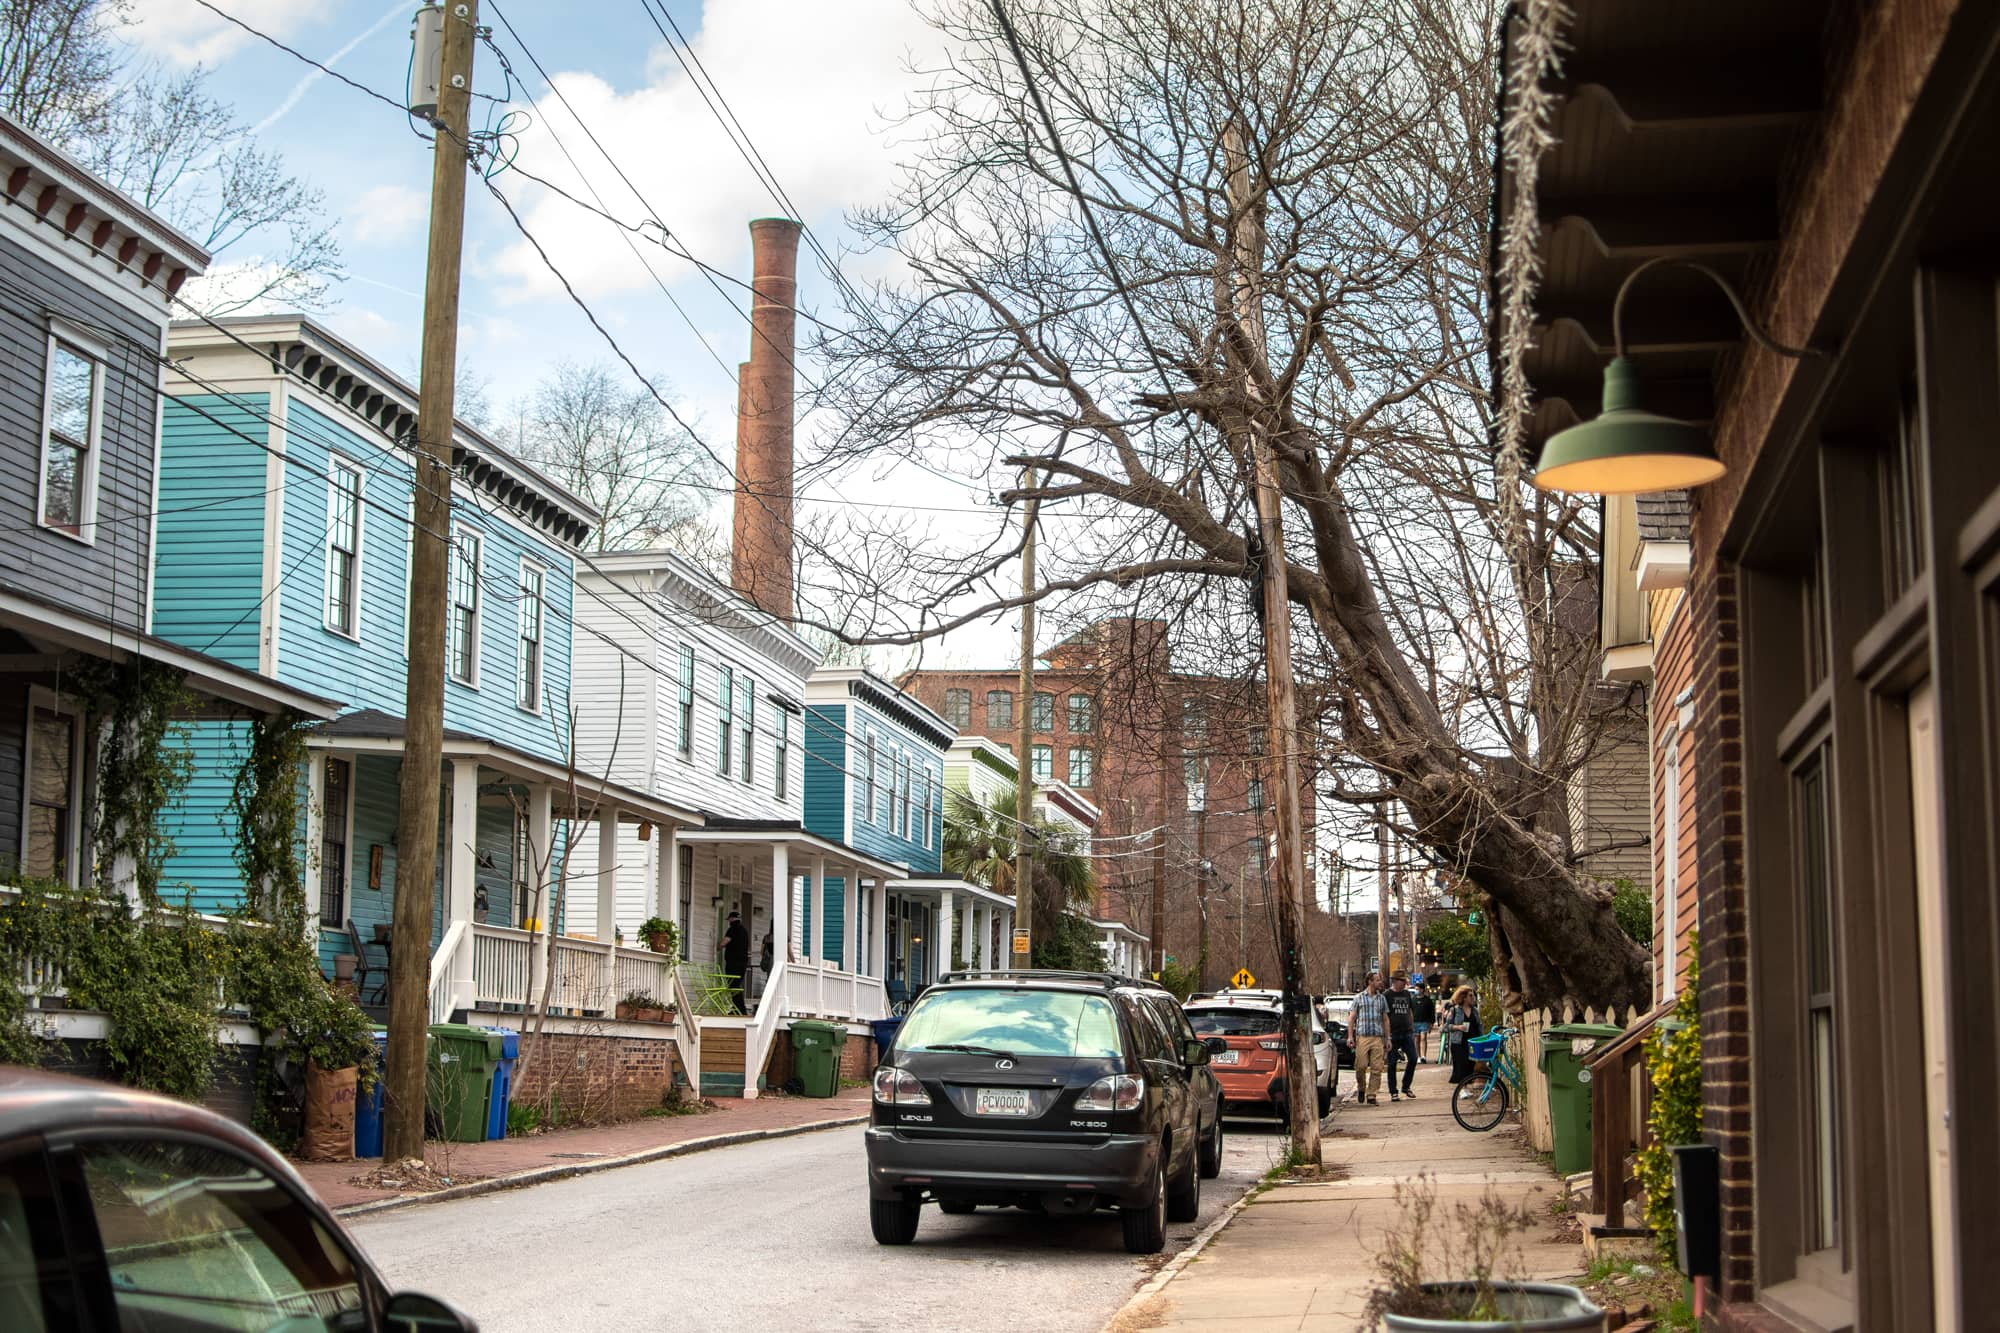 Photo of streets of Cabbagetown.